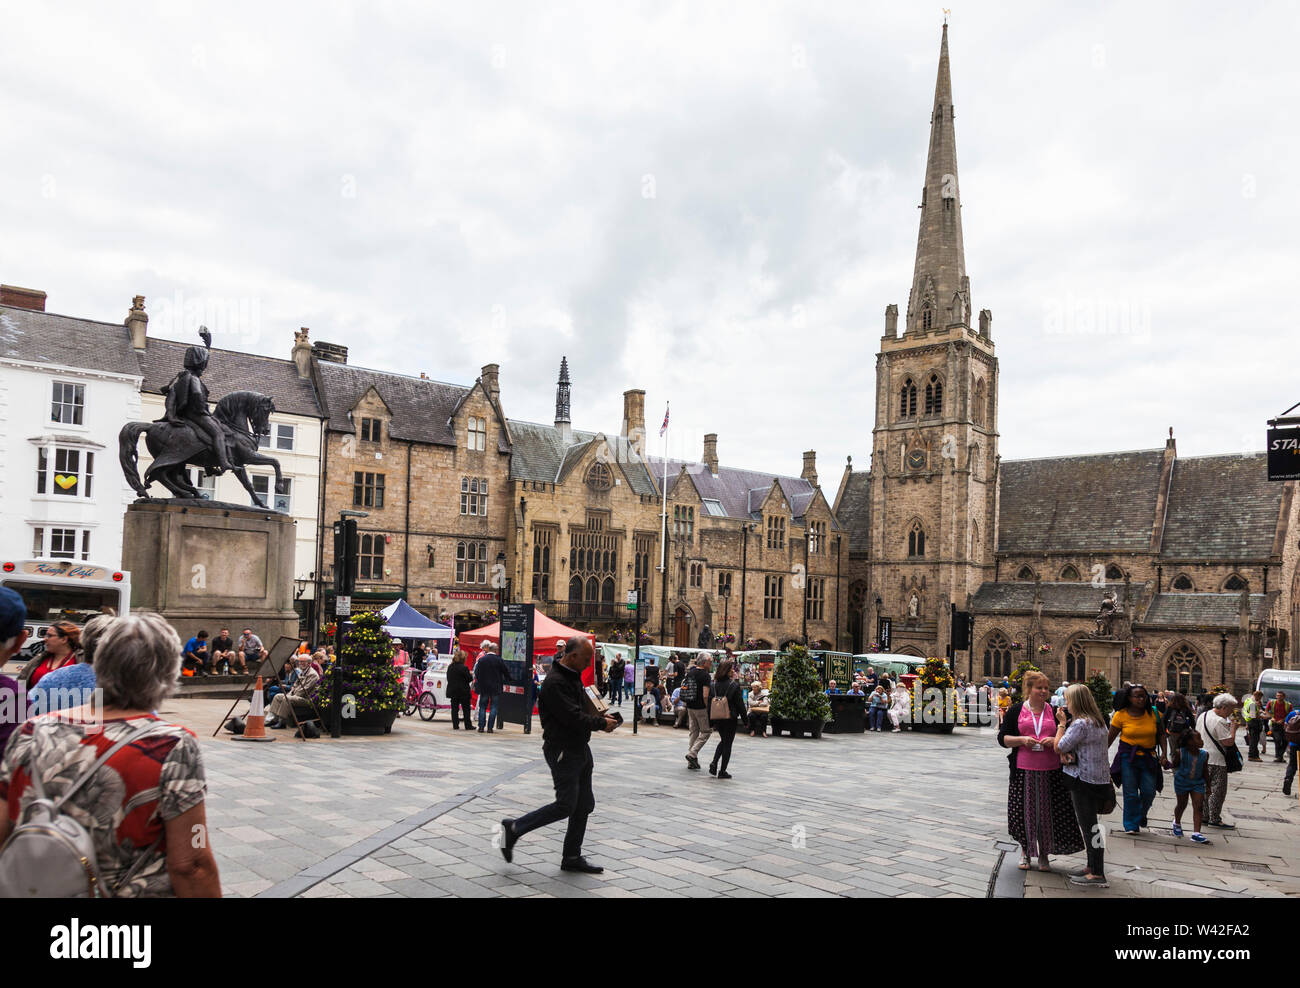 A street scene in the Market Place in Durham,England,UK - Stock Image